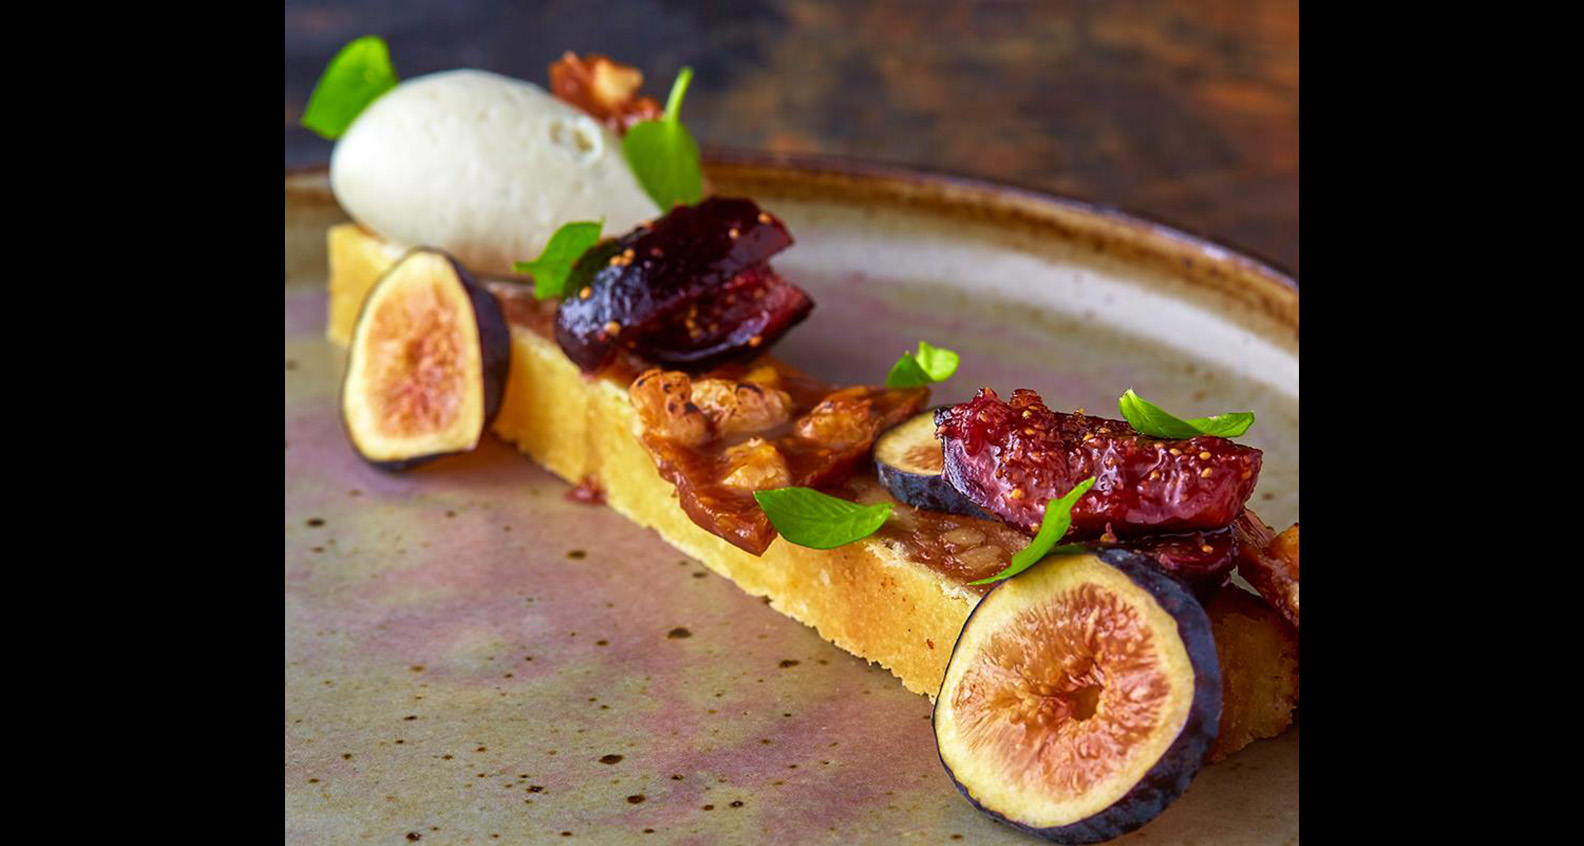 Walnut tart with gorgonzola mousse & fig compote created by Huff